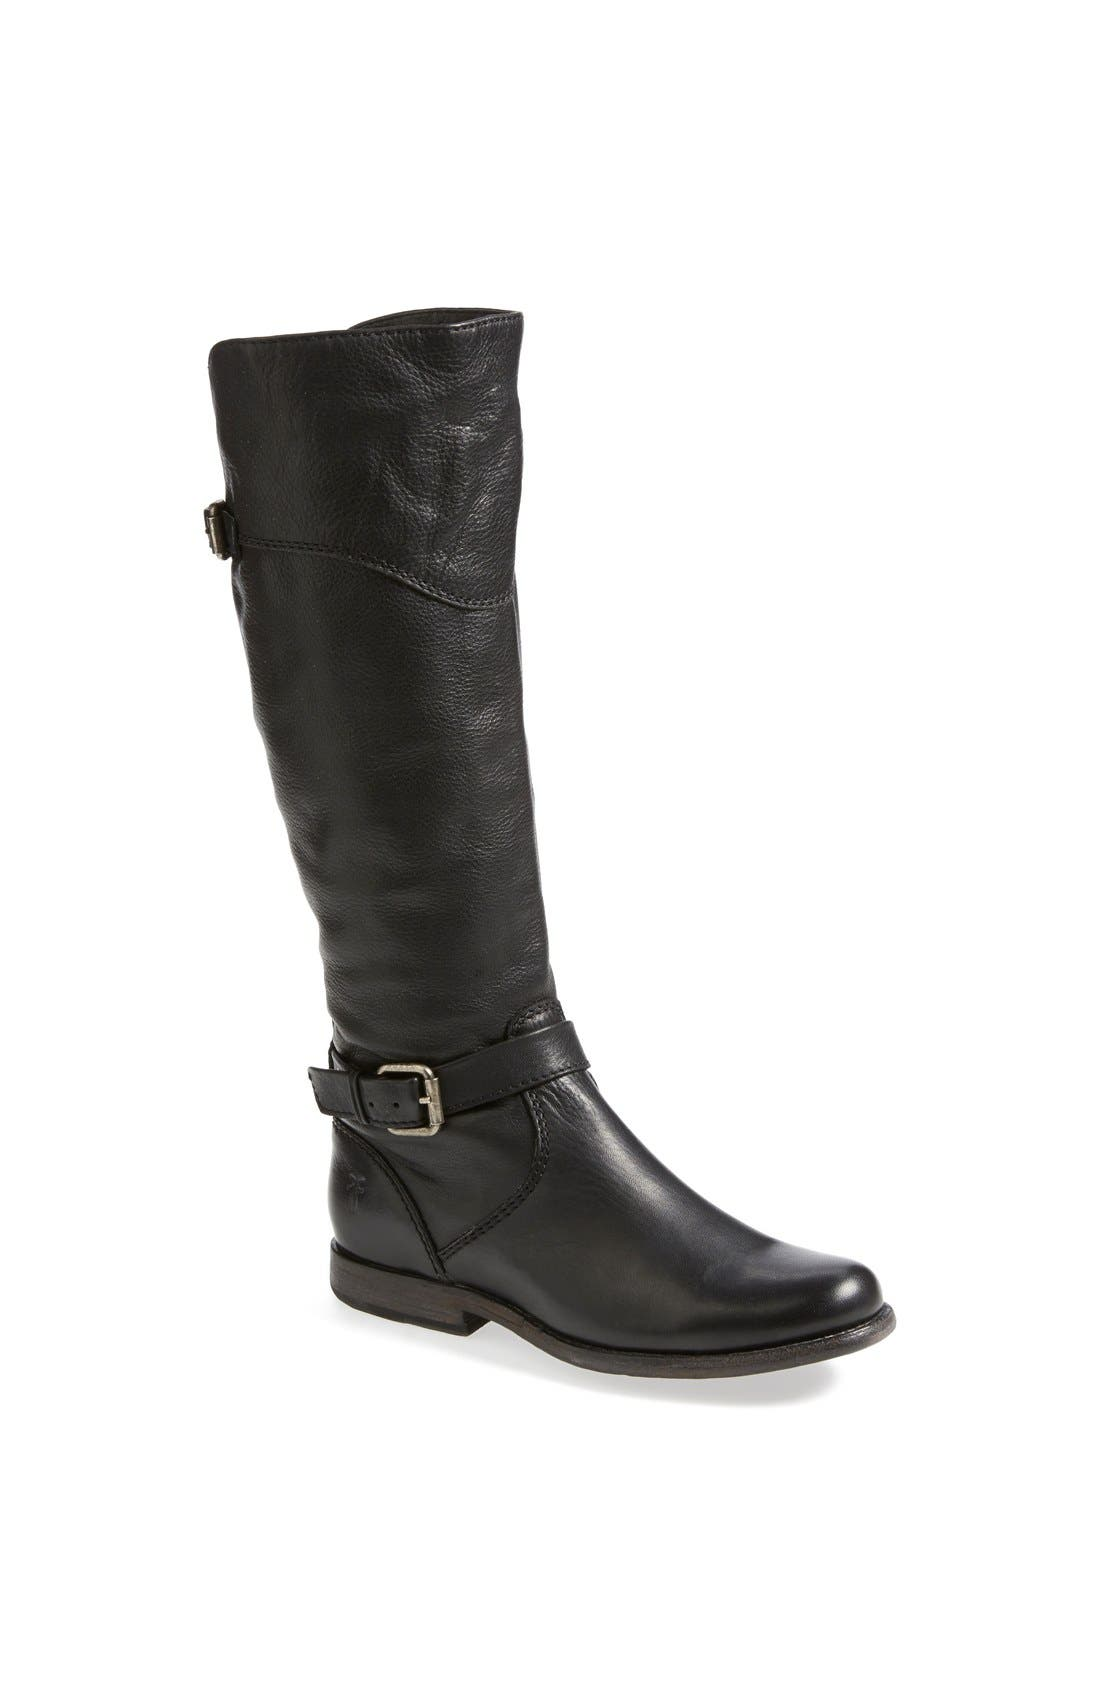 Alternate Image 1 Selected - Frye 'Phillip' Riding Boot (Extended Calf) (Women)